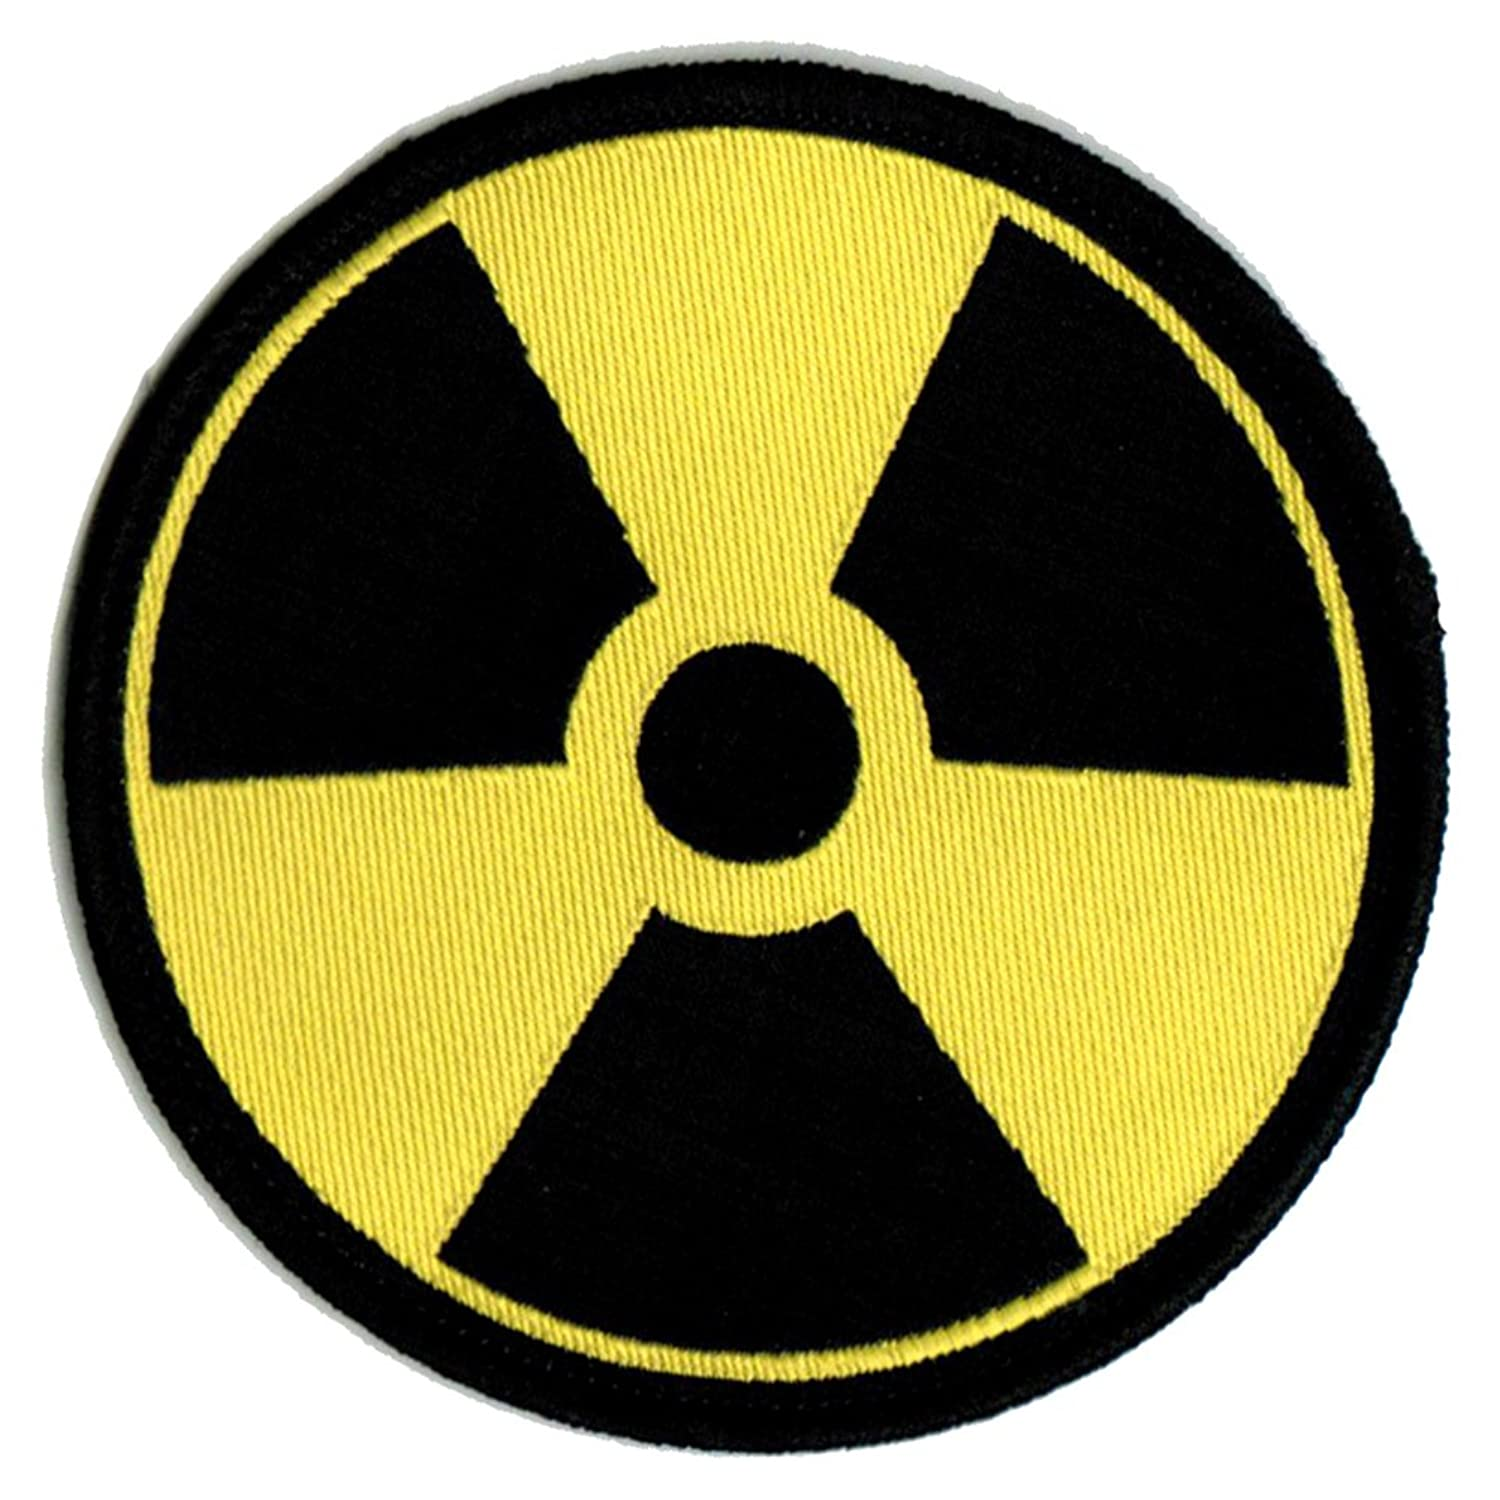 Nuclear radiation symbol embroidered patch iron on danger symbol nuclear radiation symbol embroidered patch iron on danger symbol yellow logo at amazon womens clothing store biocorpaavc Gallery